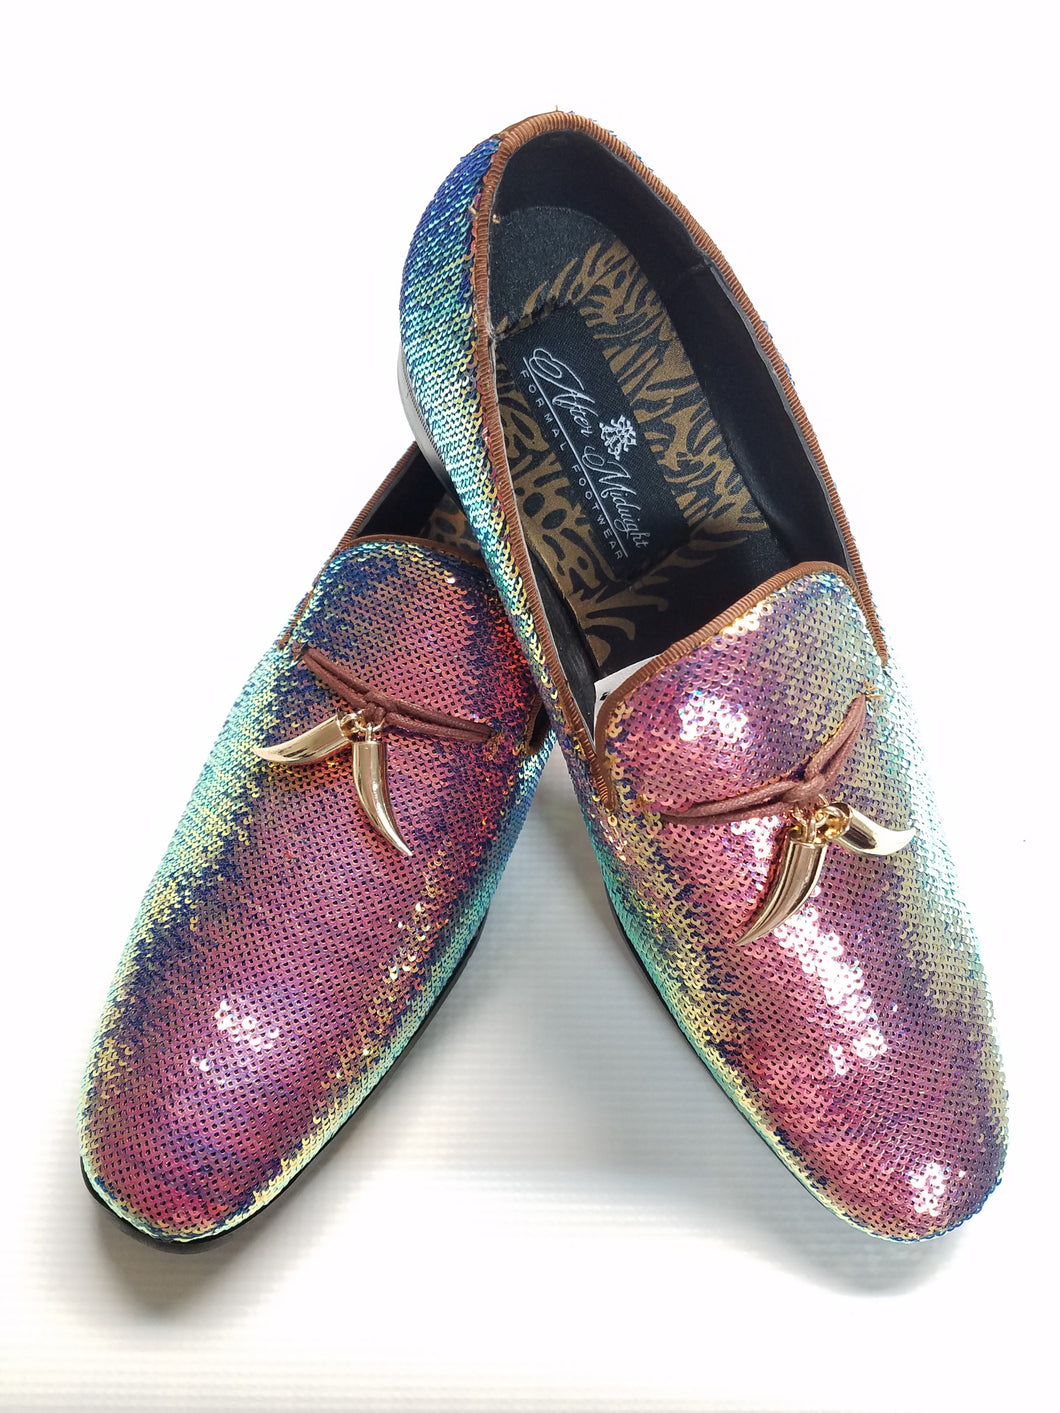 Sequin Formal Fashion Loafer (Rose Pearl) DKGLO6759RP